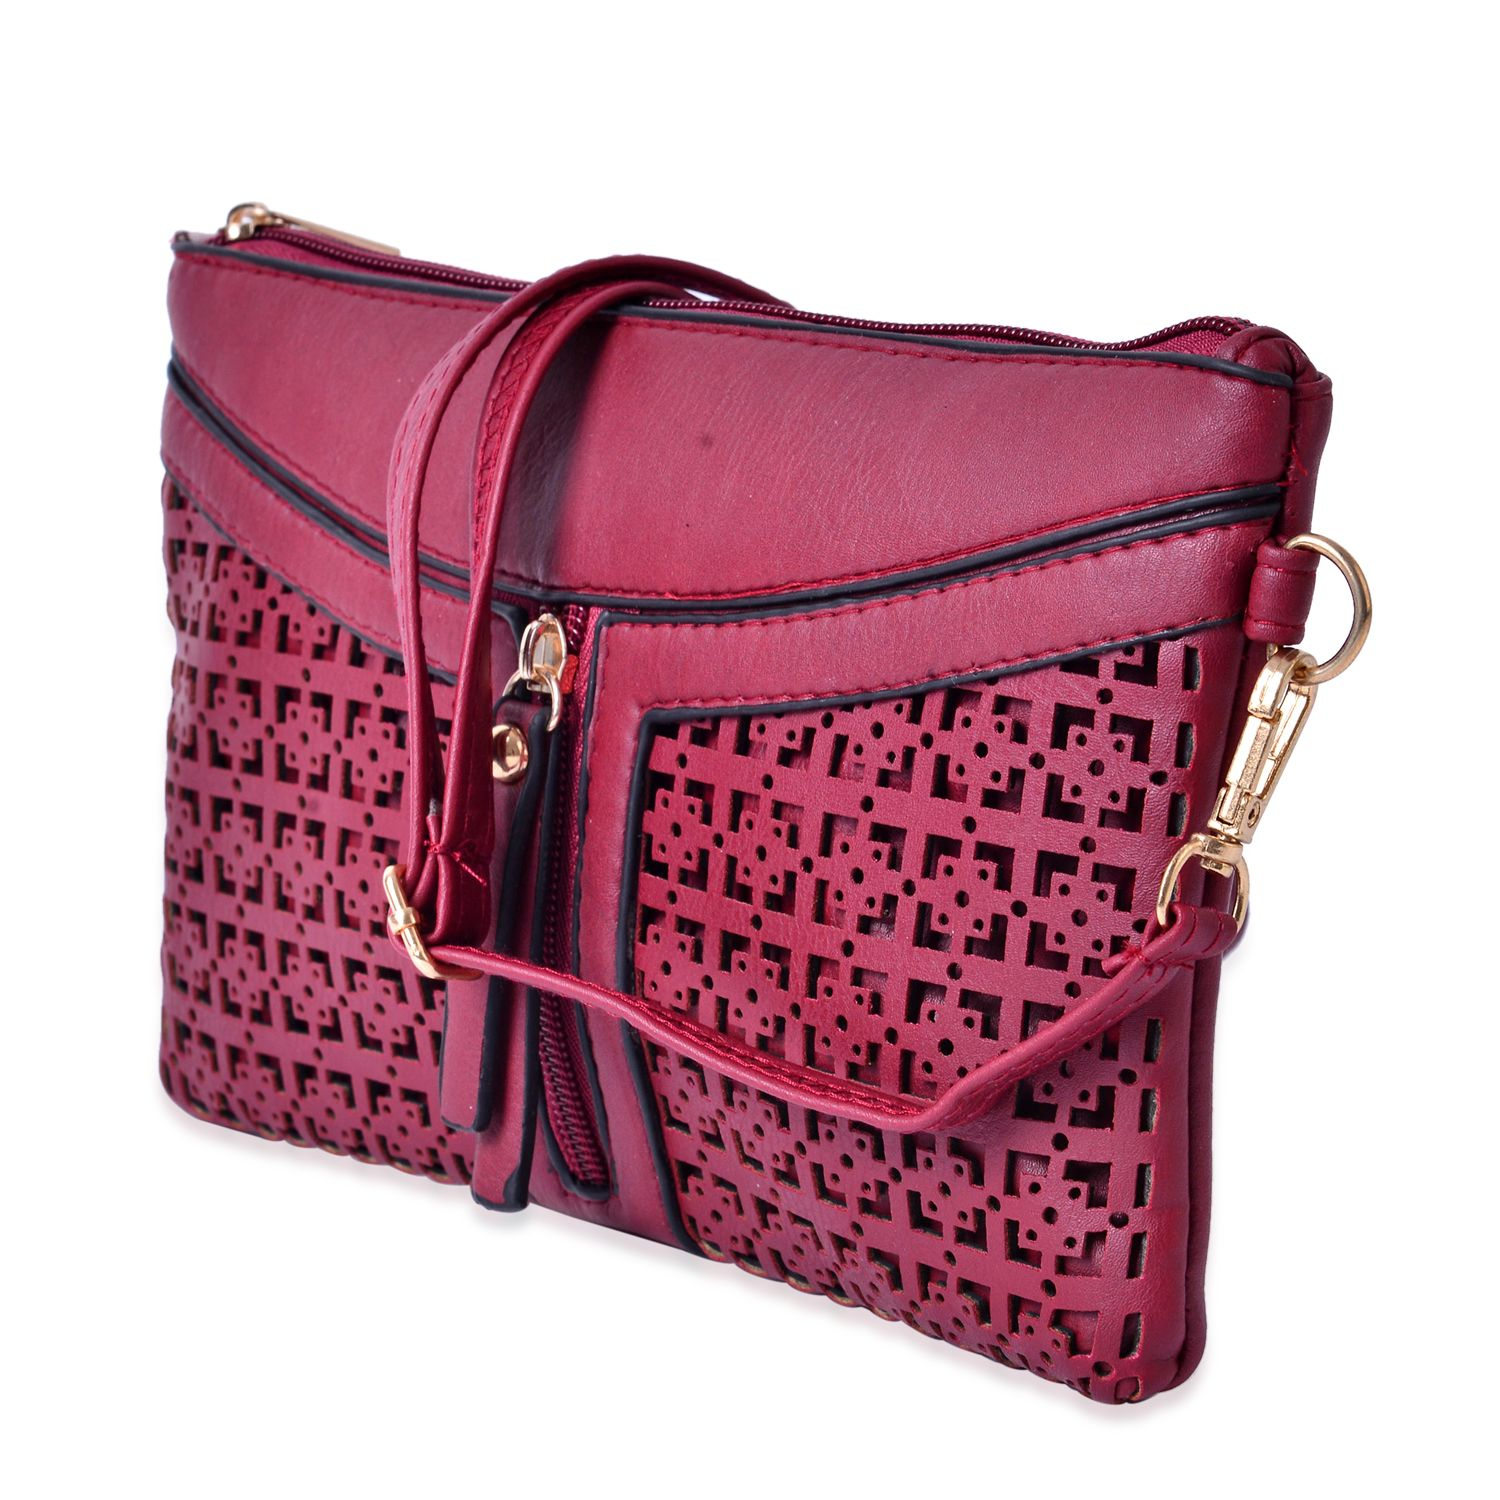 J Francis - Red Faux Leather Crossbody Bag (9x5.5 in)